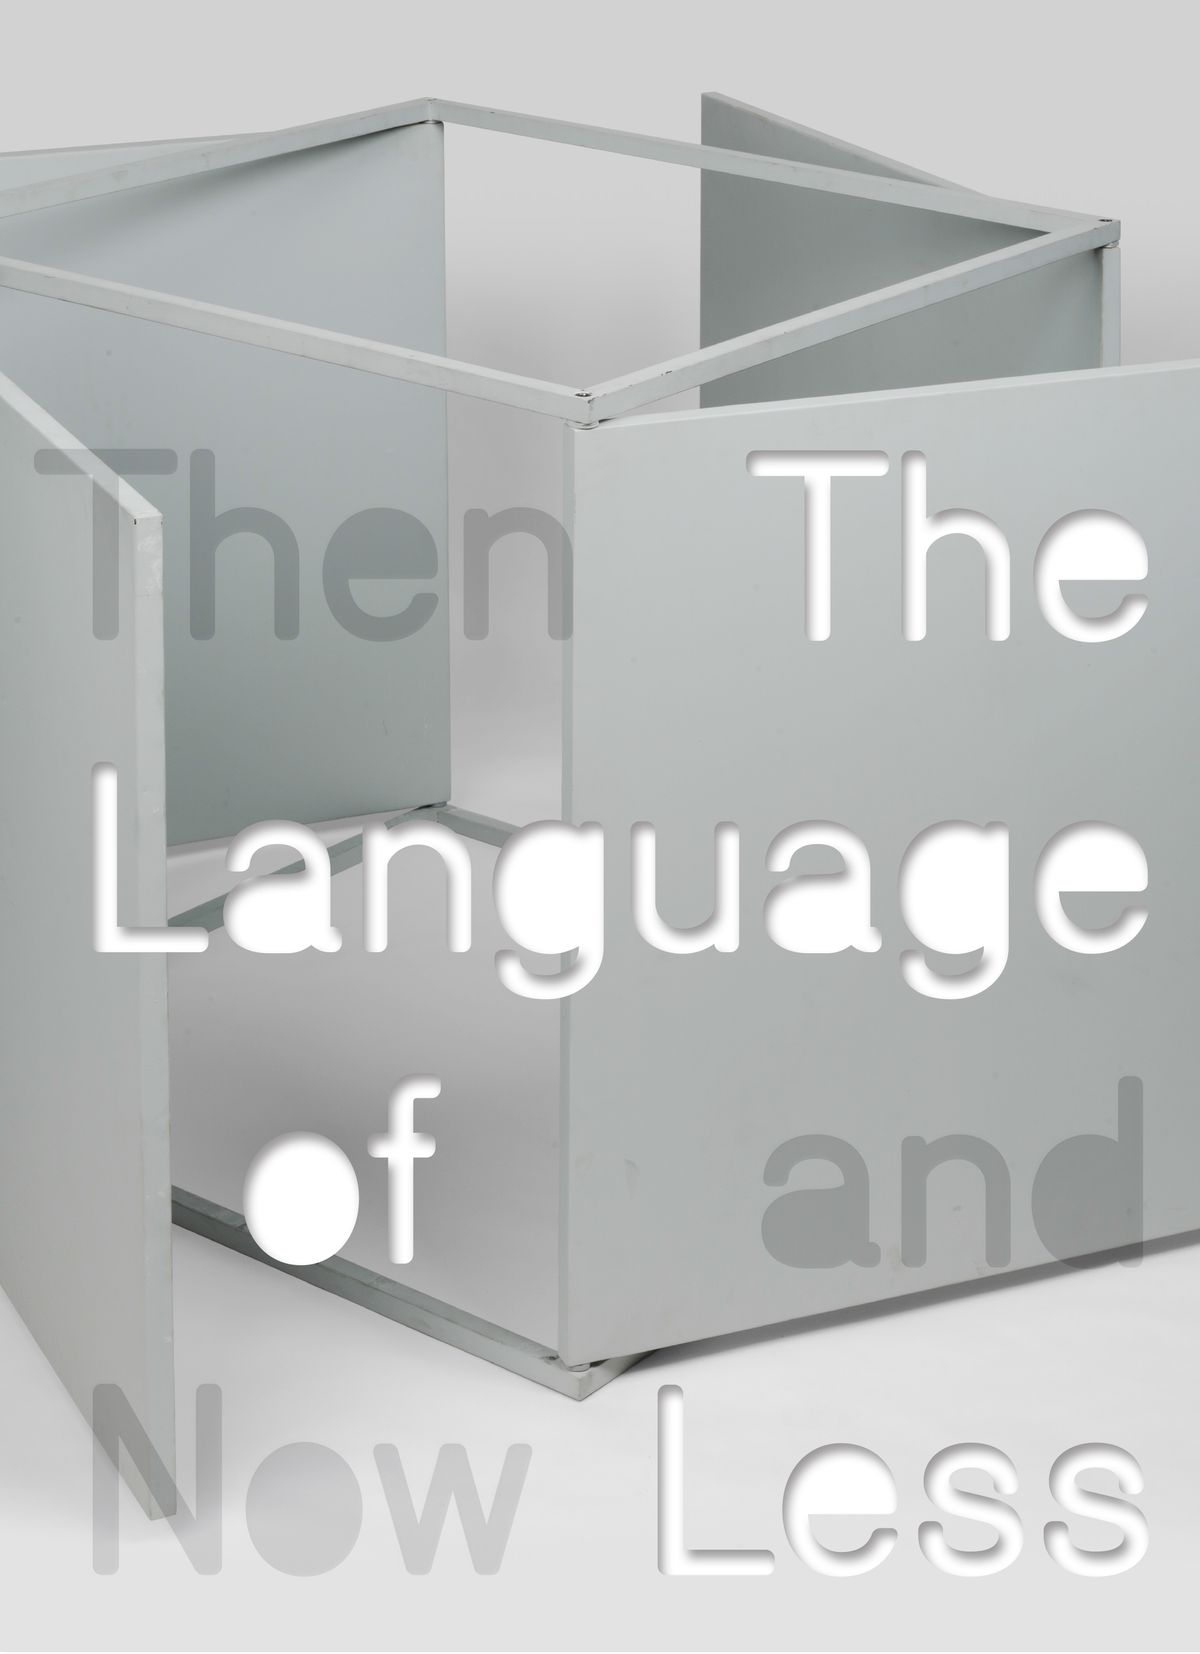 The Language of Less, Then and Now - Book at Kavi Gupta Editions